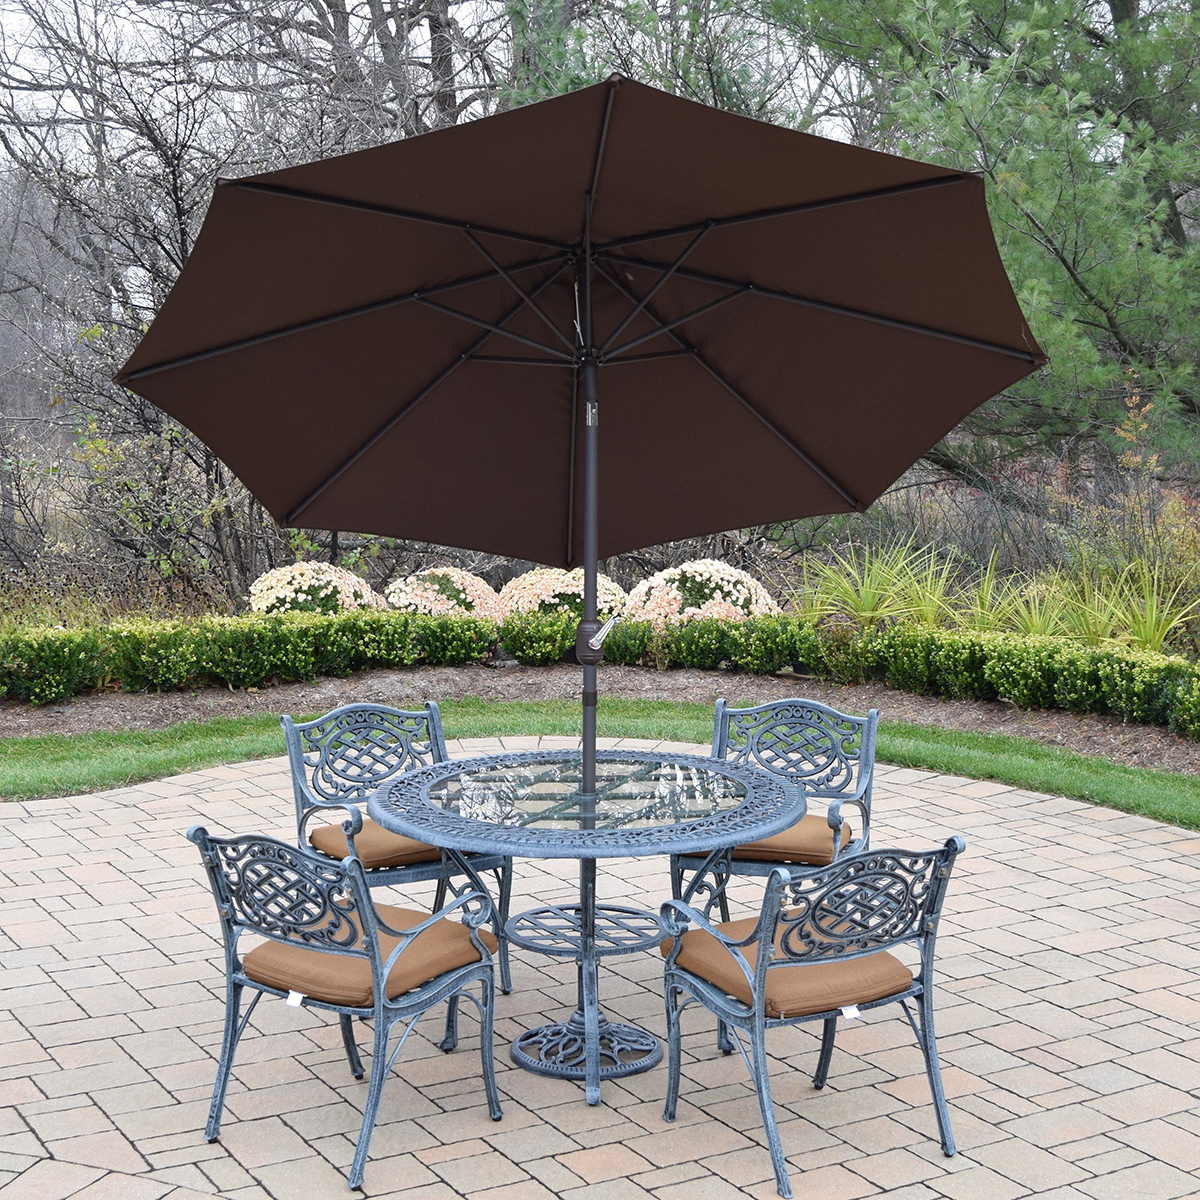 Cast Aluminum Patio Furniture Heart Pattern: Oakland Living Mississippi Cast Aluminum 7 Piece Patio